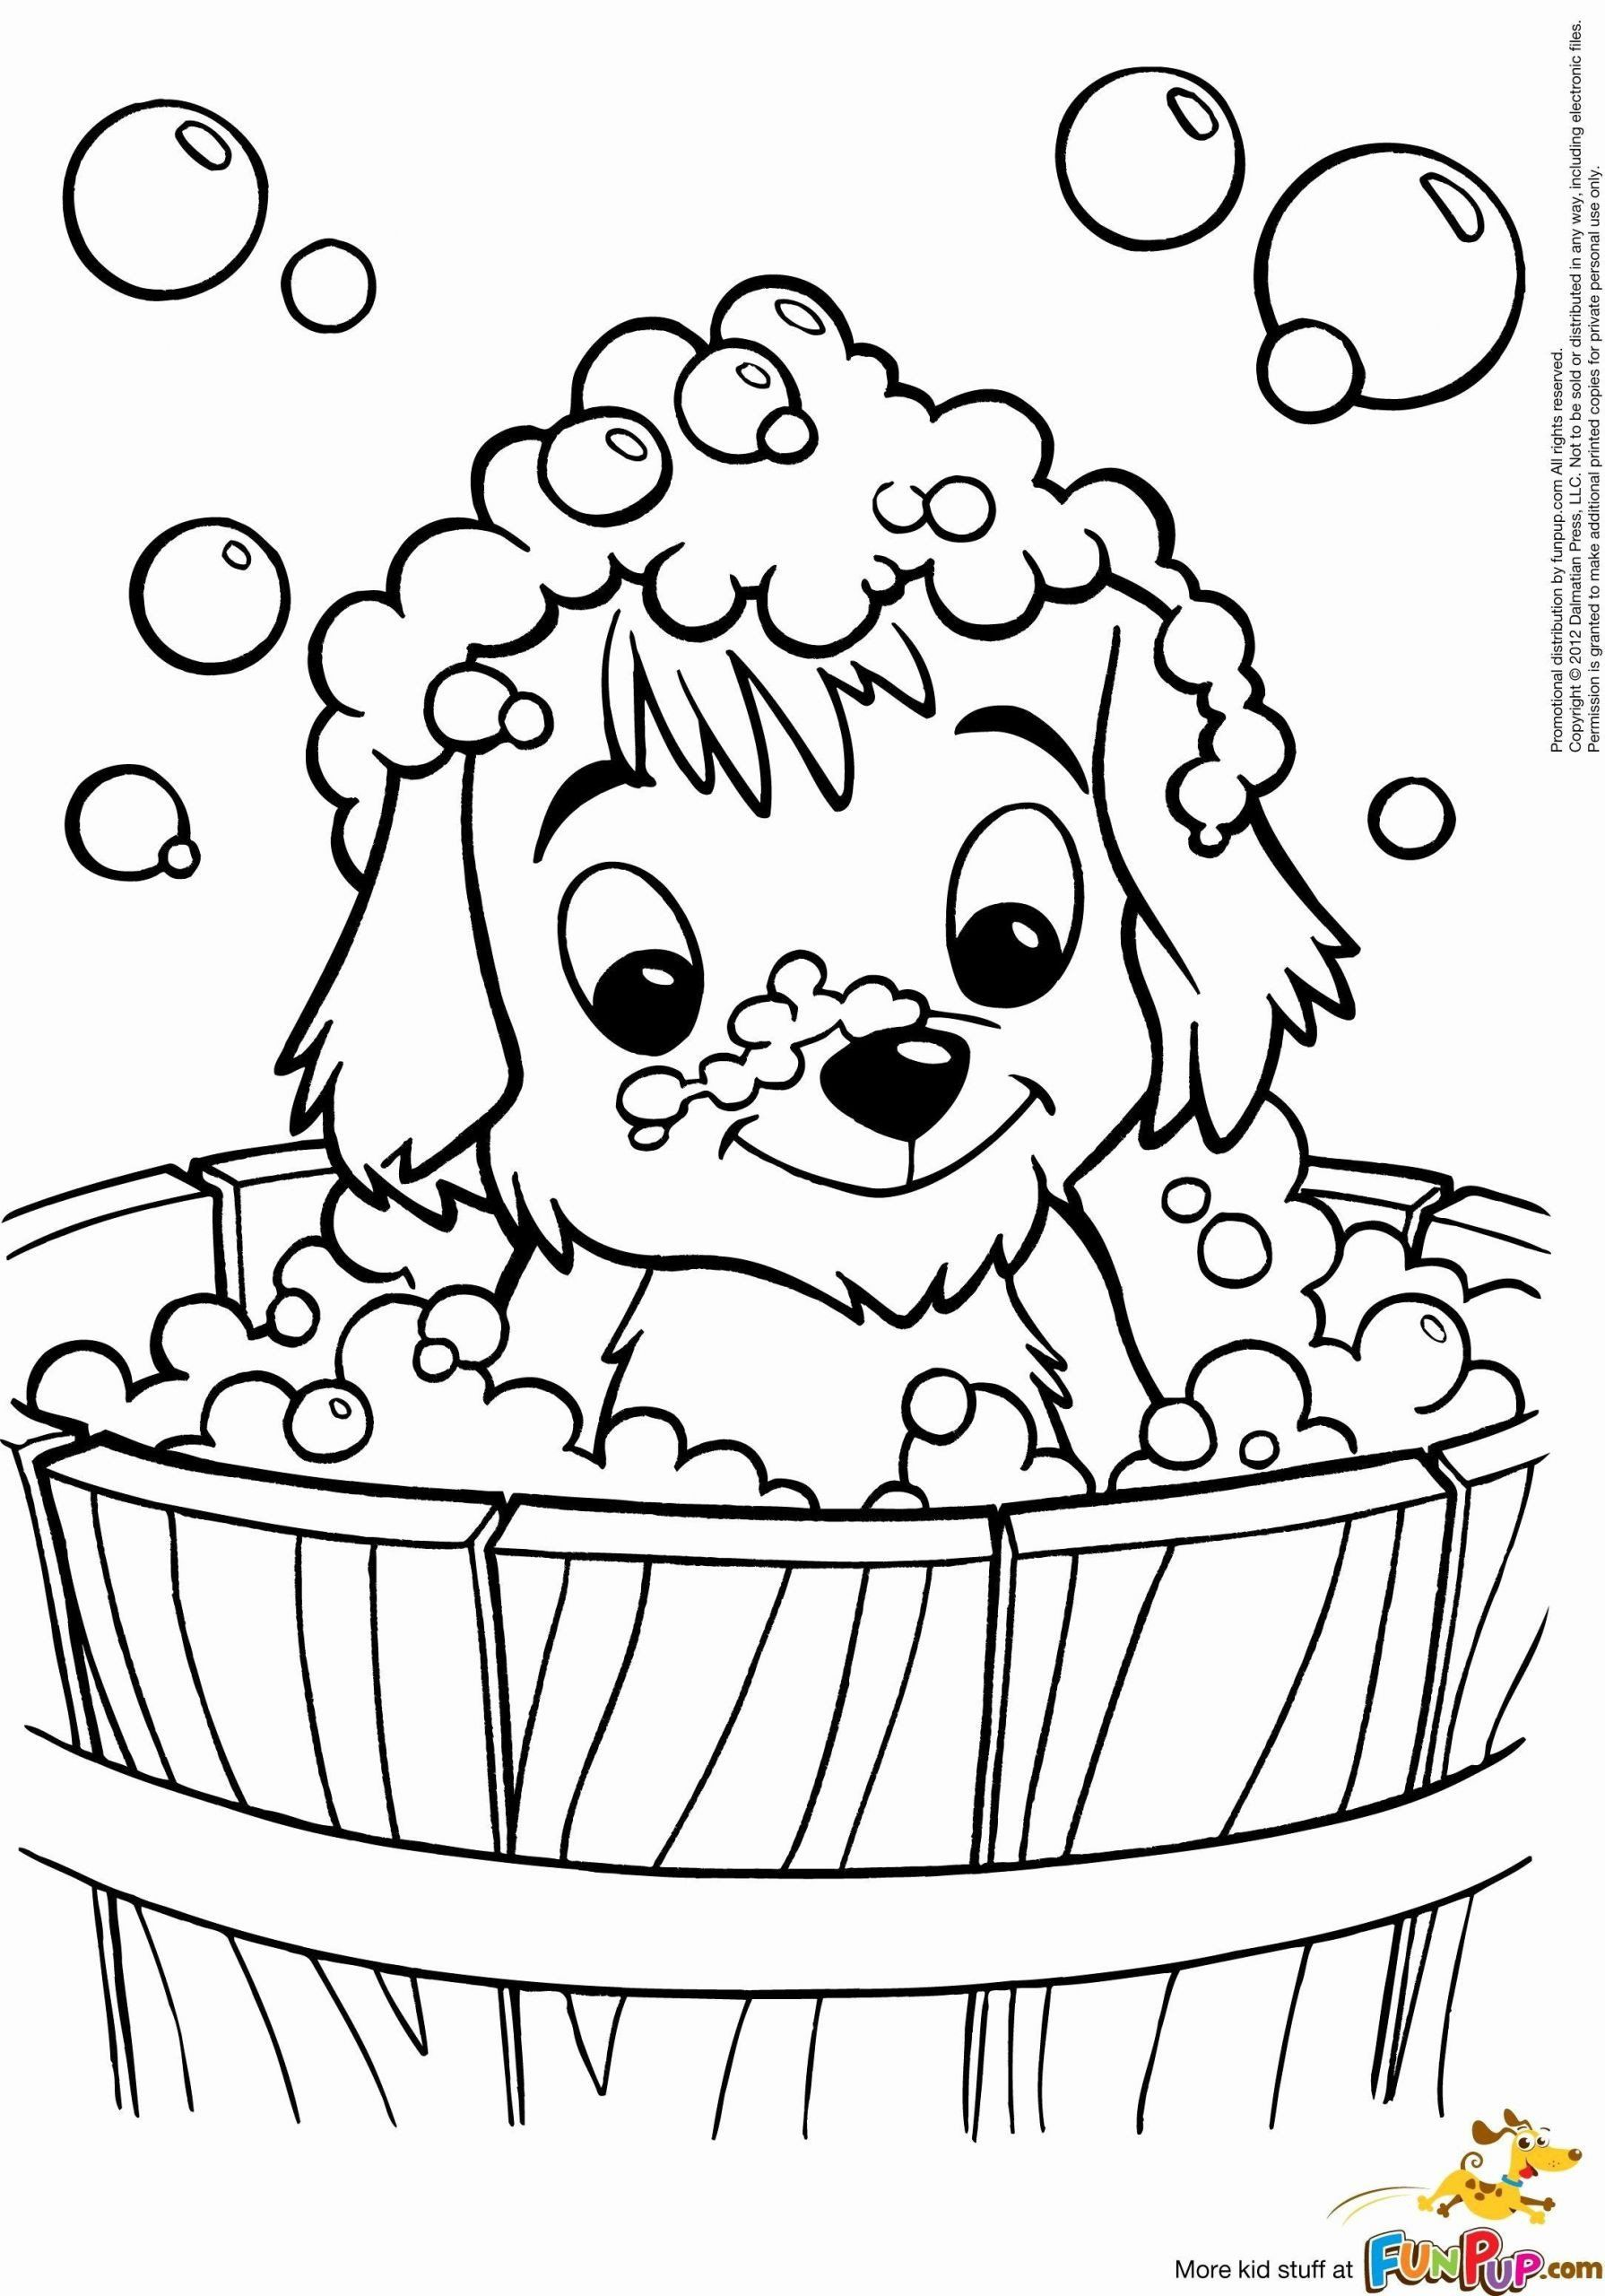 Coloring Pages For Teenagers Coloring Pages For Year Old Girls Teens Book Cute Printable In 2020 Puppy Coloring Pages Dog Coloring Page Cute Coloring Pages